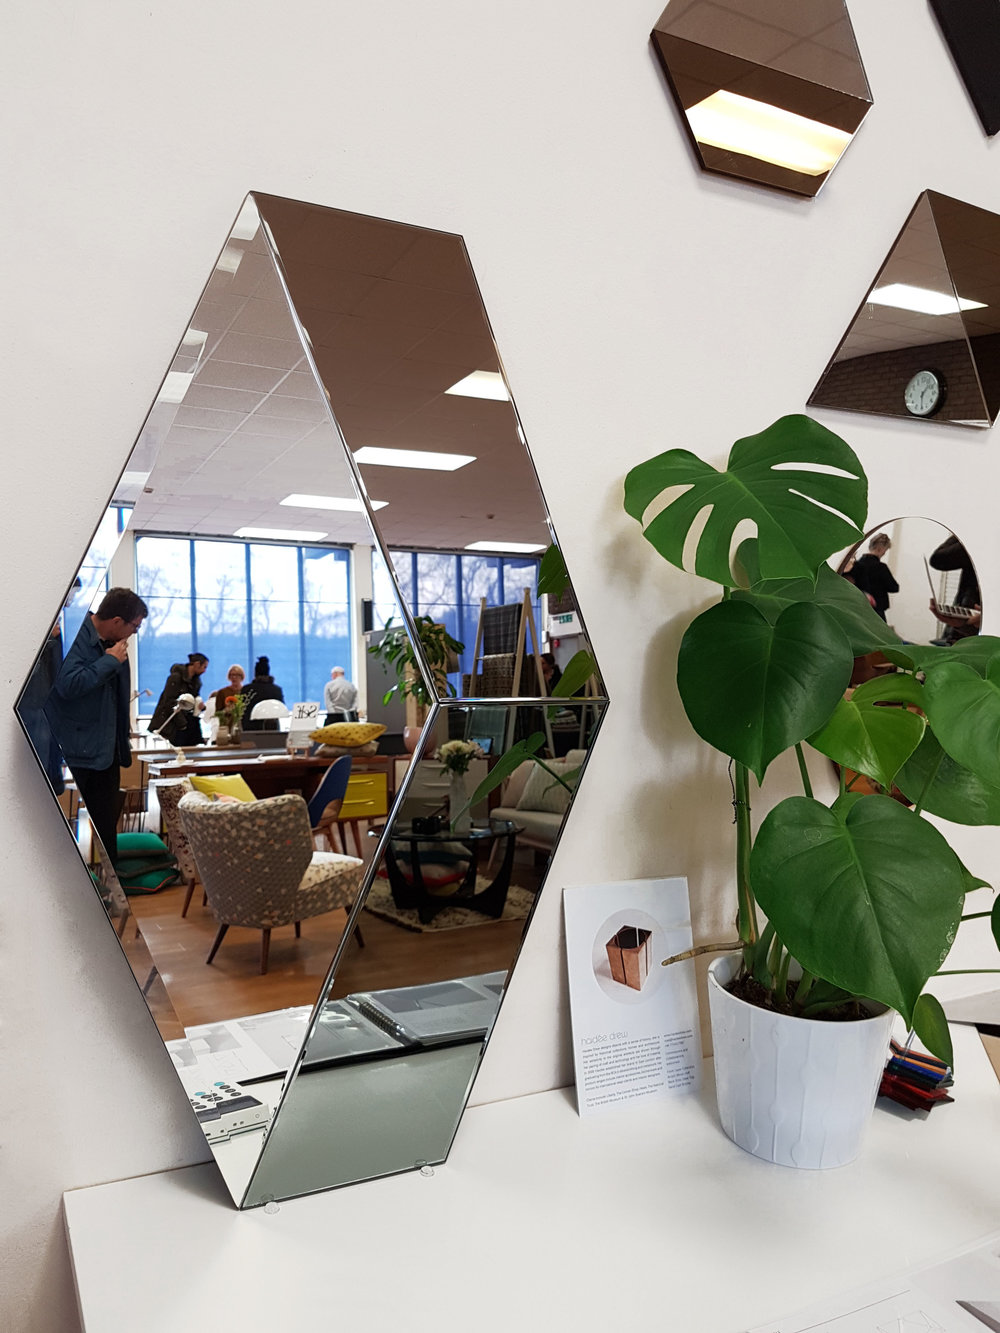 NEW HEX MIRROR - HEX Mirror will launch very soon so watch this space. The mirror made from 4mm glass mirror in silver, grey and bronze has both small and large bevels to create a really stunning focal point in a room. Not just a functional piece but a work of art with hints of contemporary luxury and geometry.